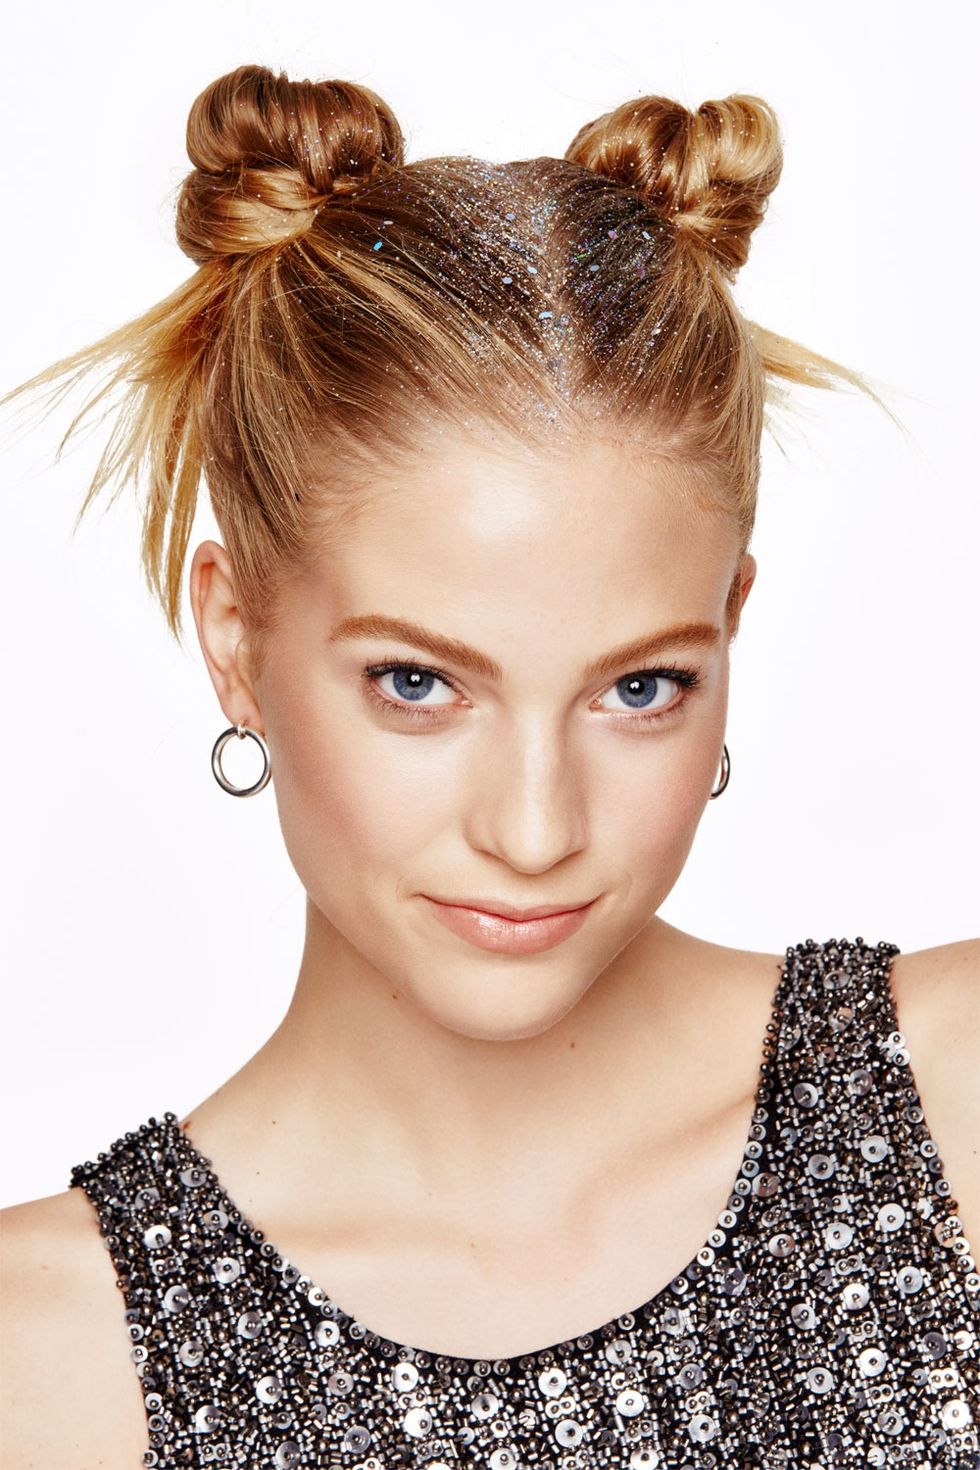 hair-ideas-style-what-to-wear-newyearseve-nye-holiday-outfits-winter-space-buns-.jpg